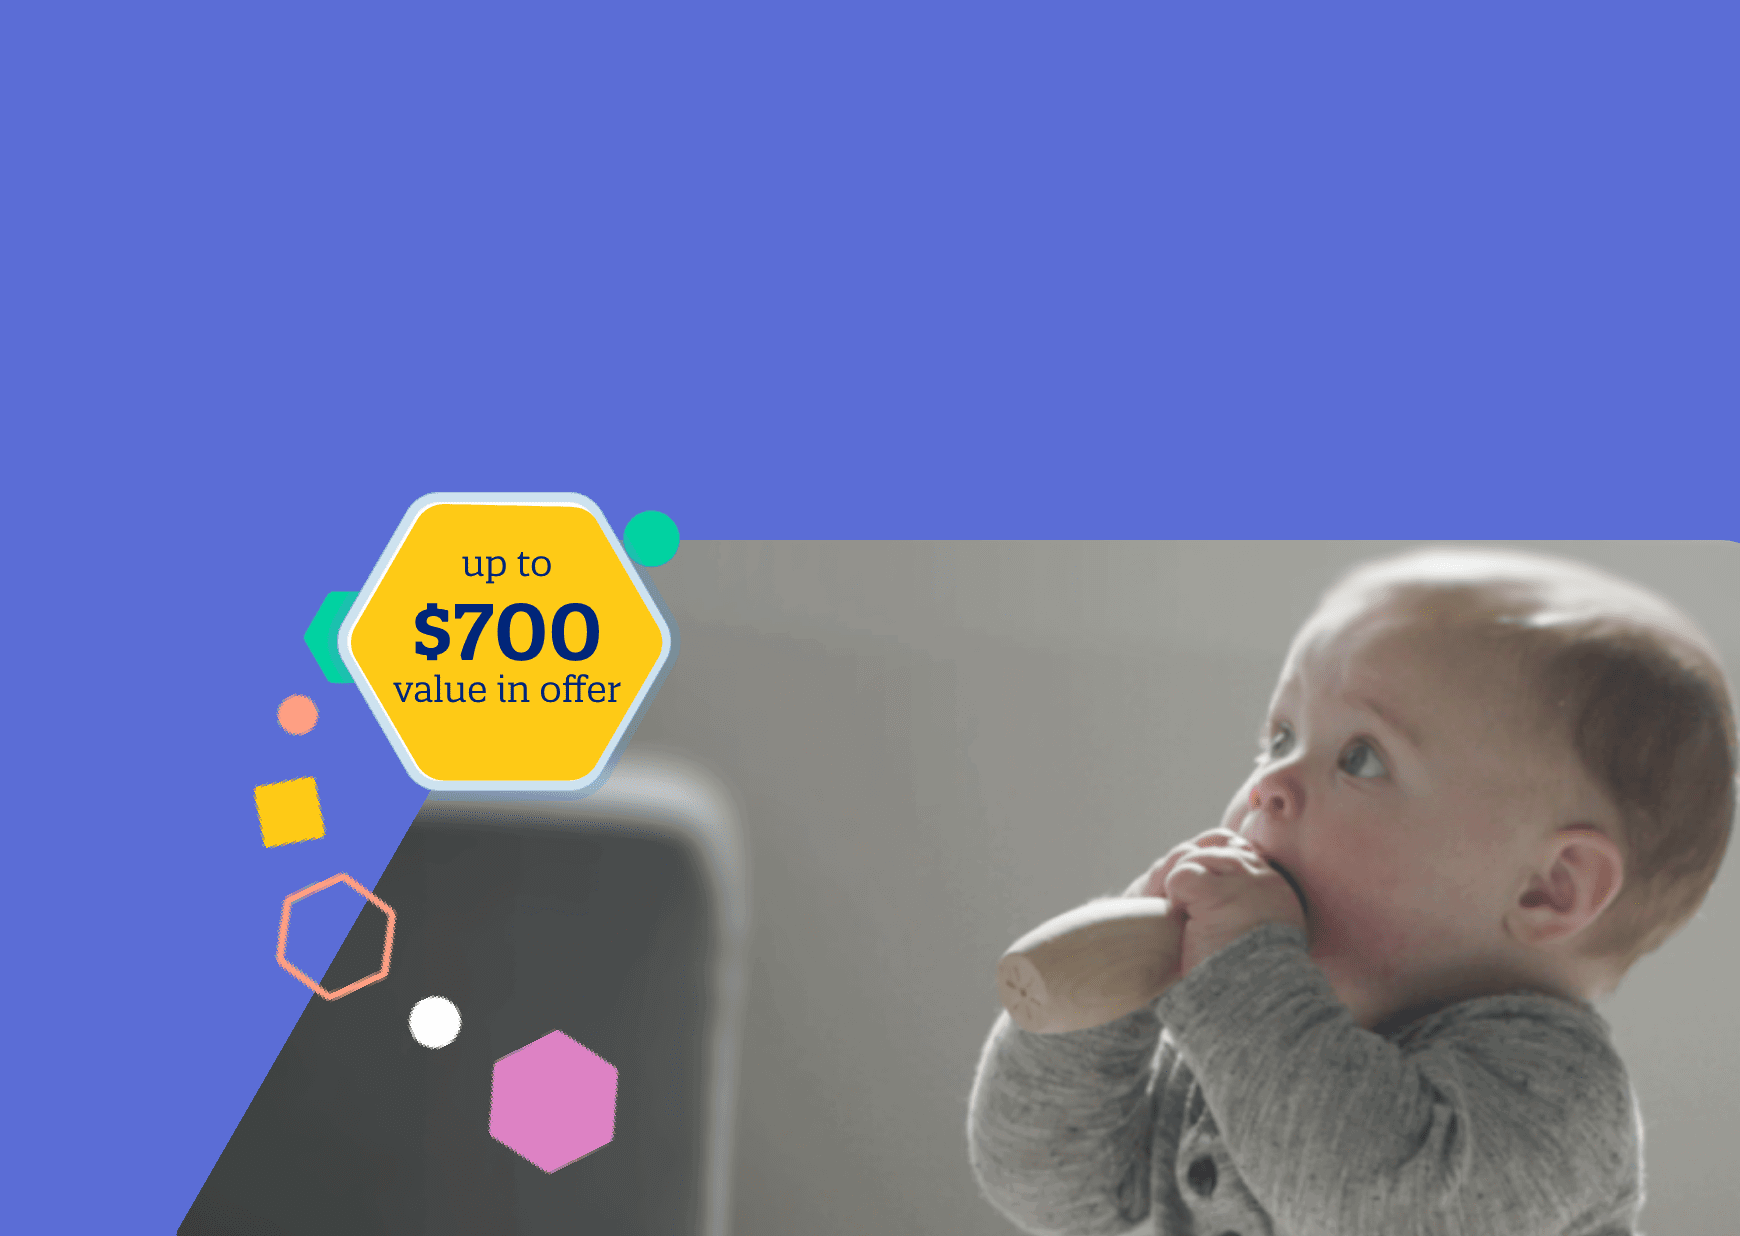 Baby Thinking Save Up to $700